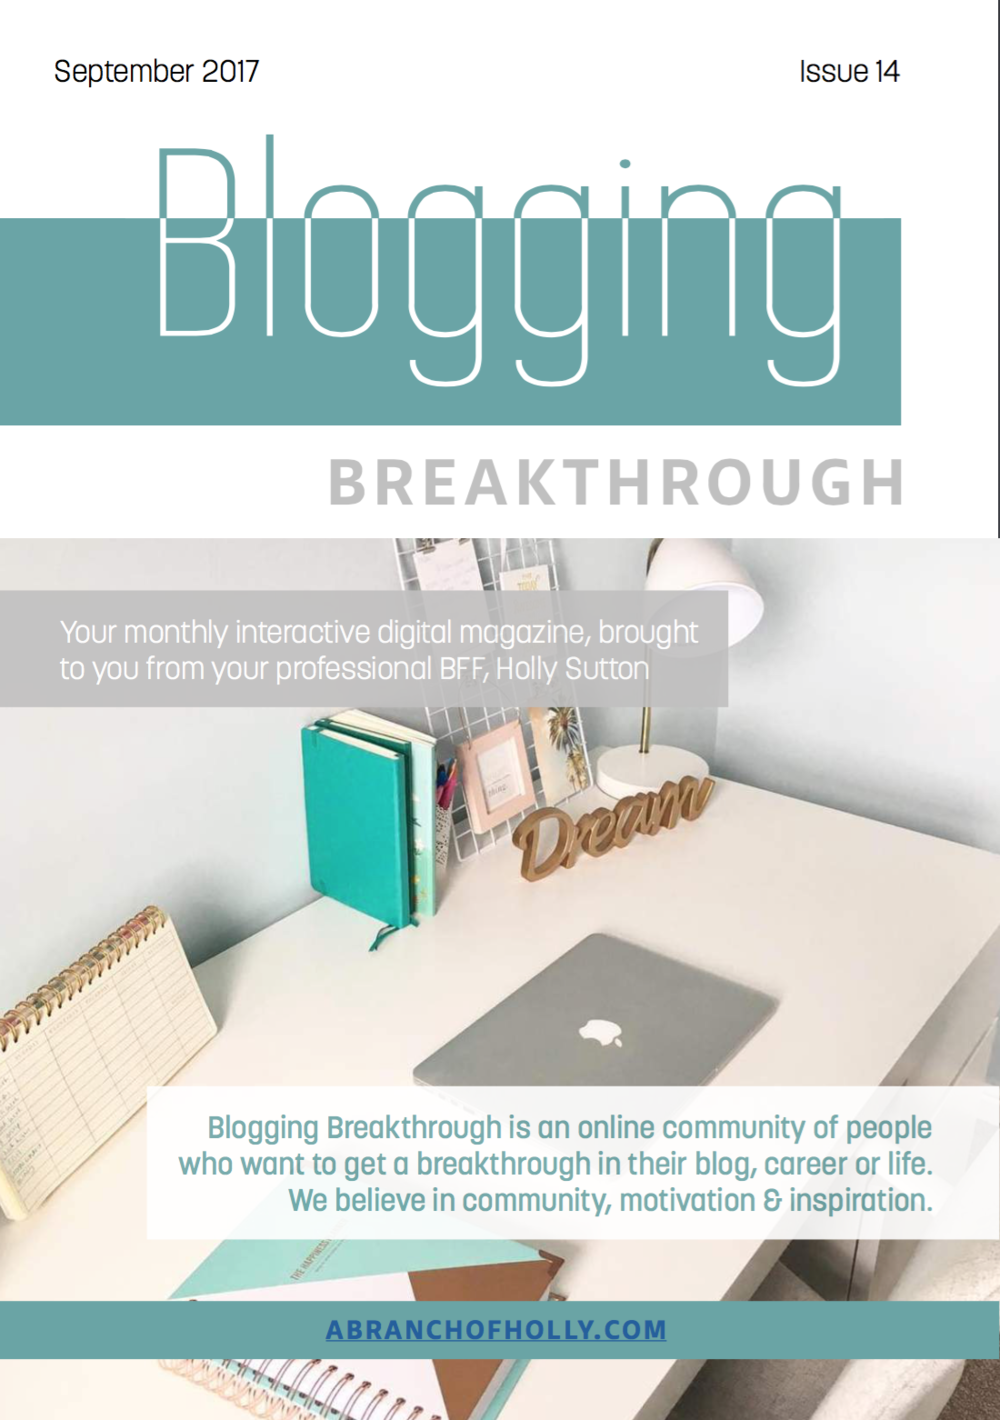 blogging breakthrough september 2018 issue 14